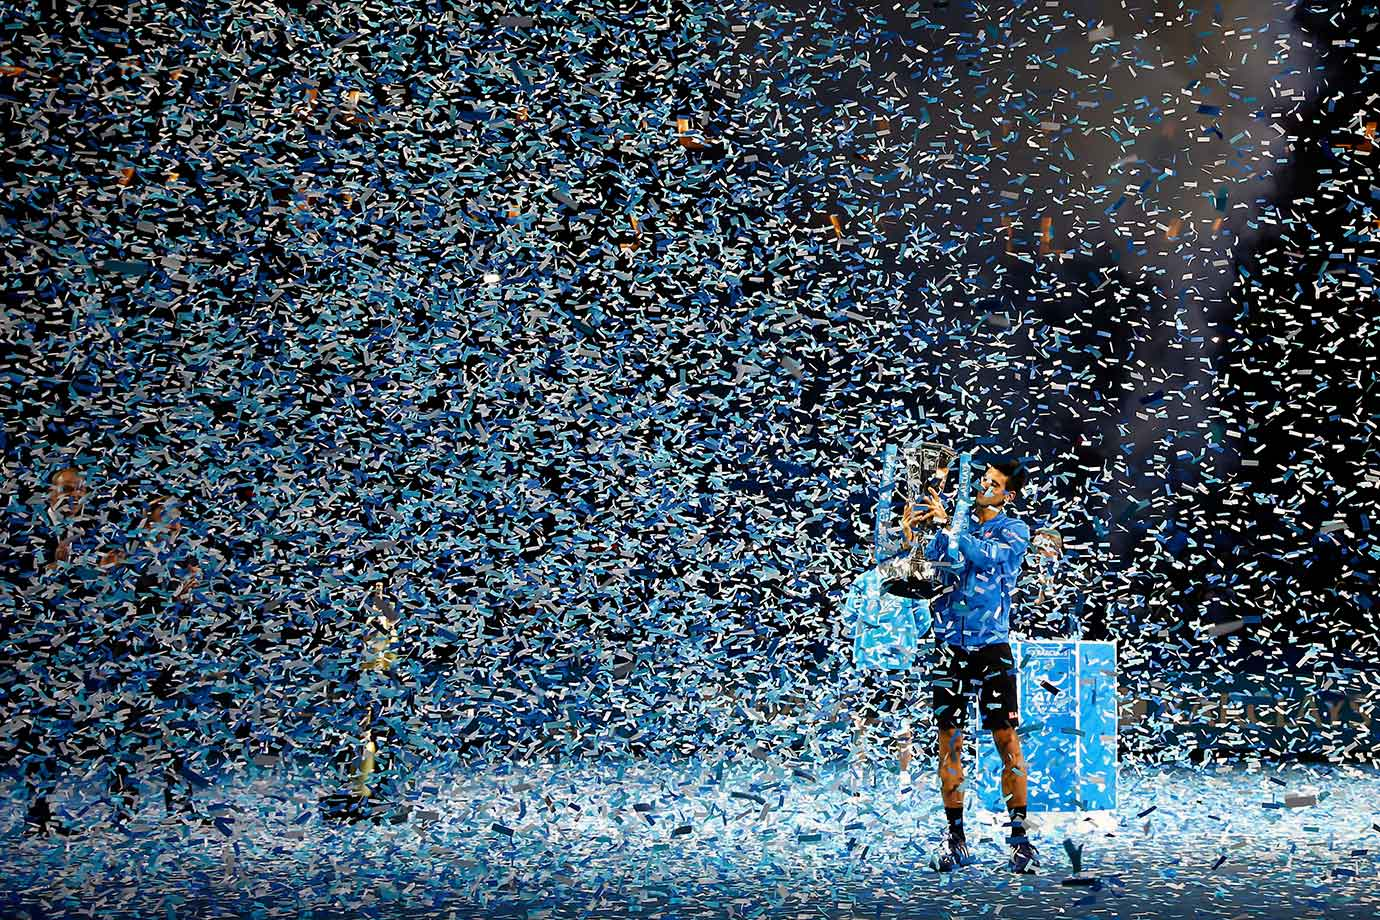 Still no word if Novak Djokovic made his way through this blizzard of confetti after winning the Barclays ATP World Tour Finals.